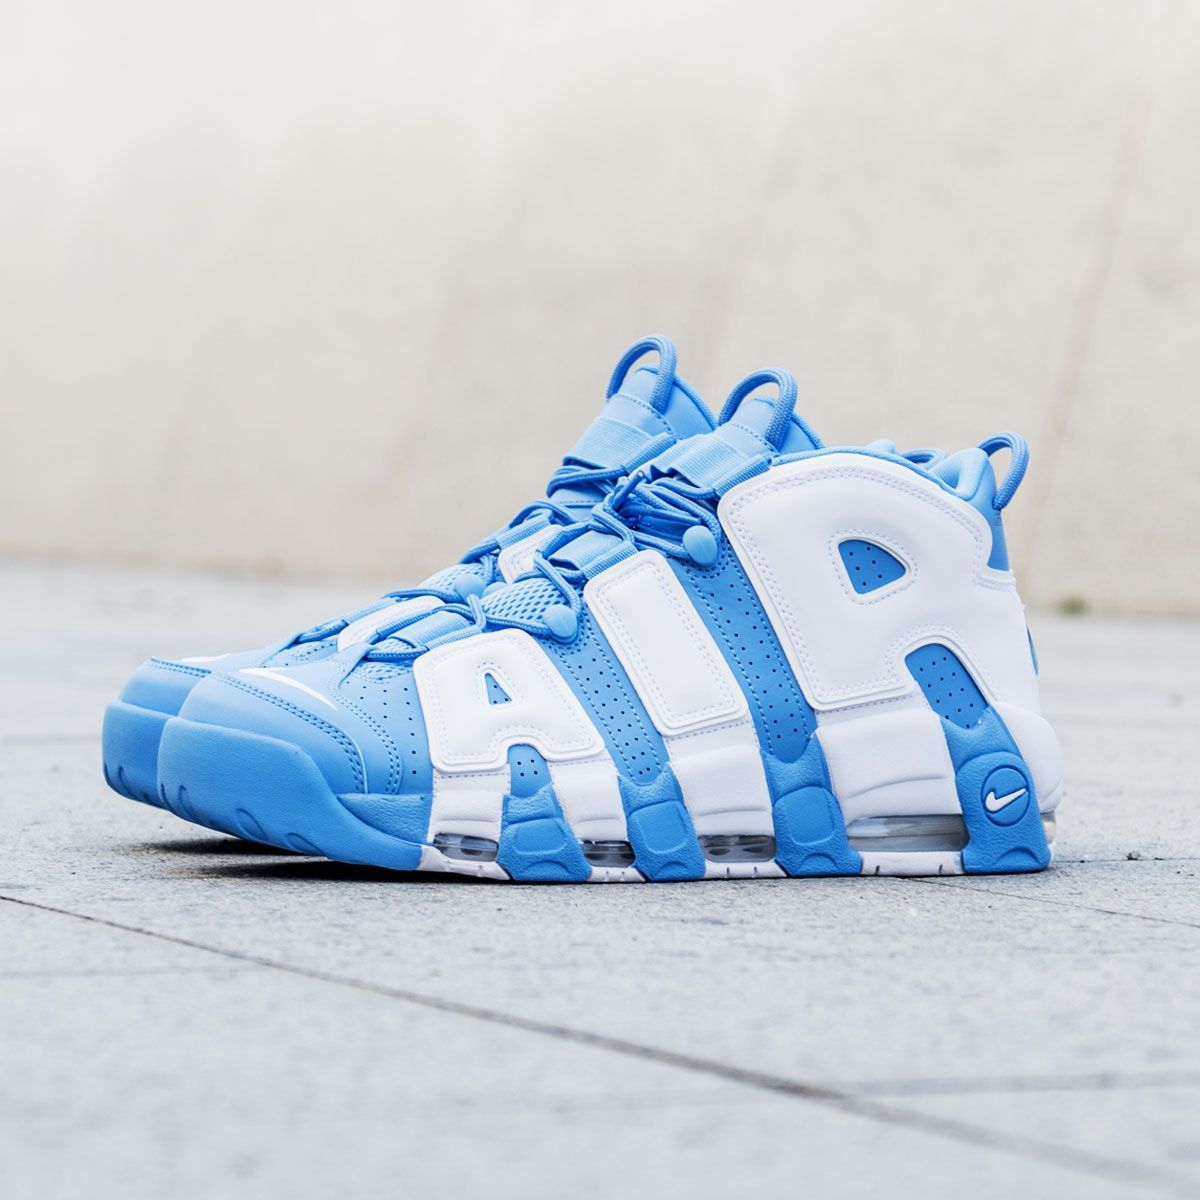 Nike Air More Uptempo '96 in UNC colorway is a sight to